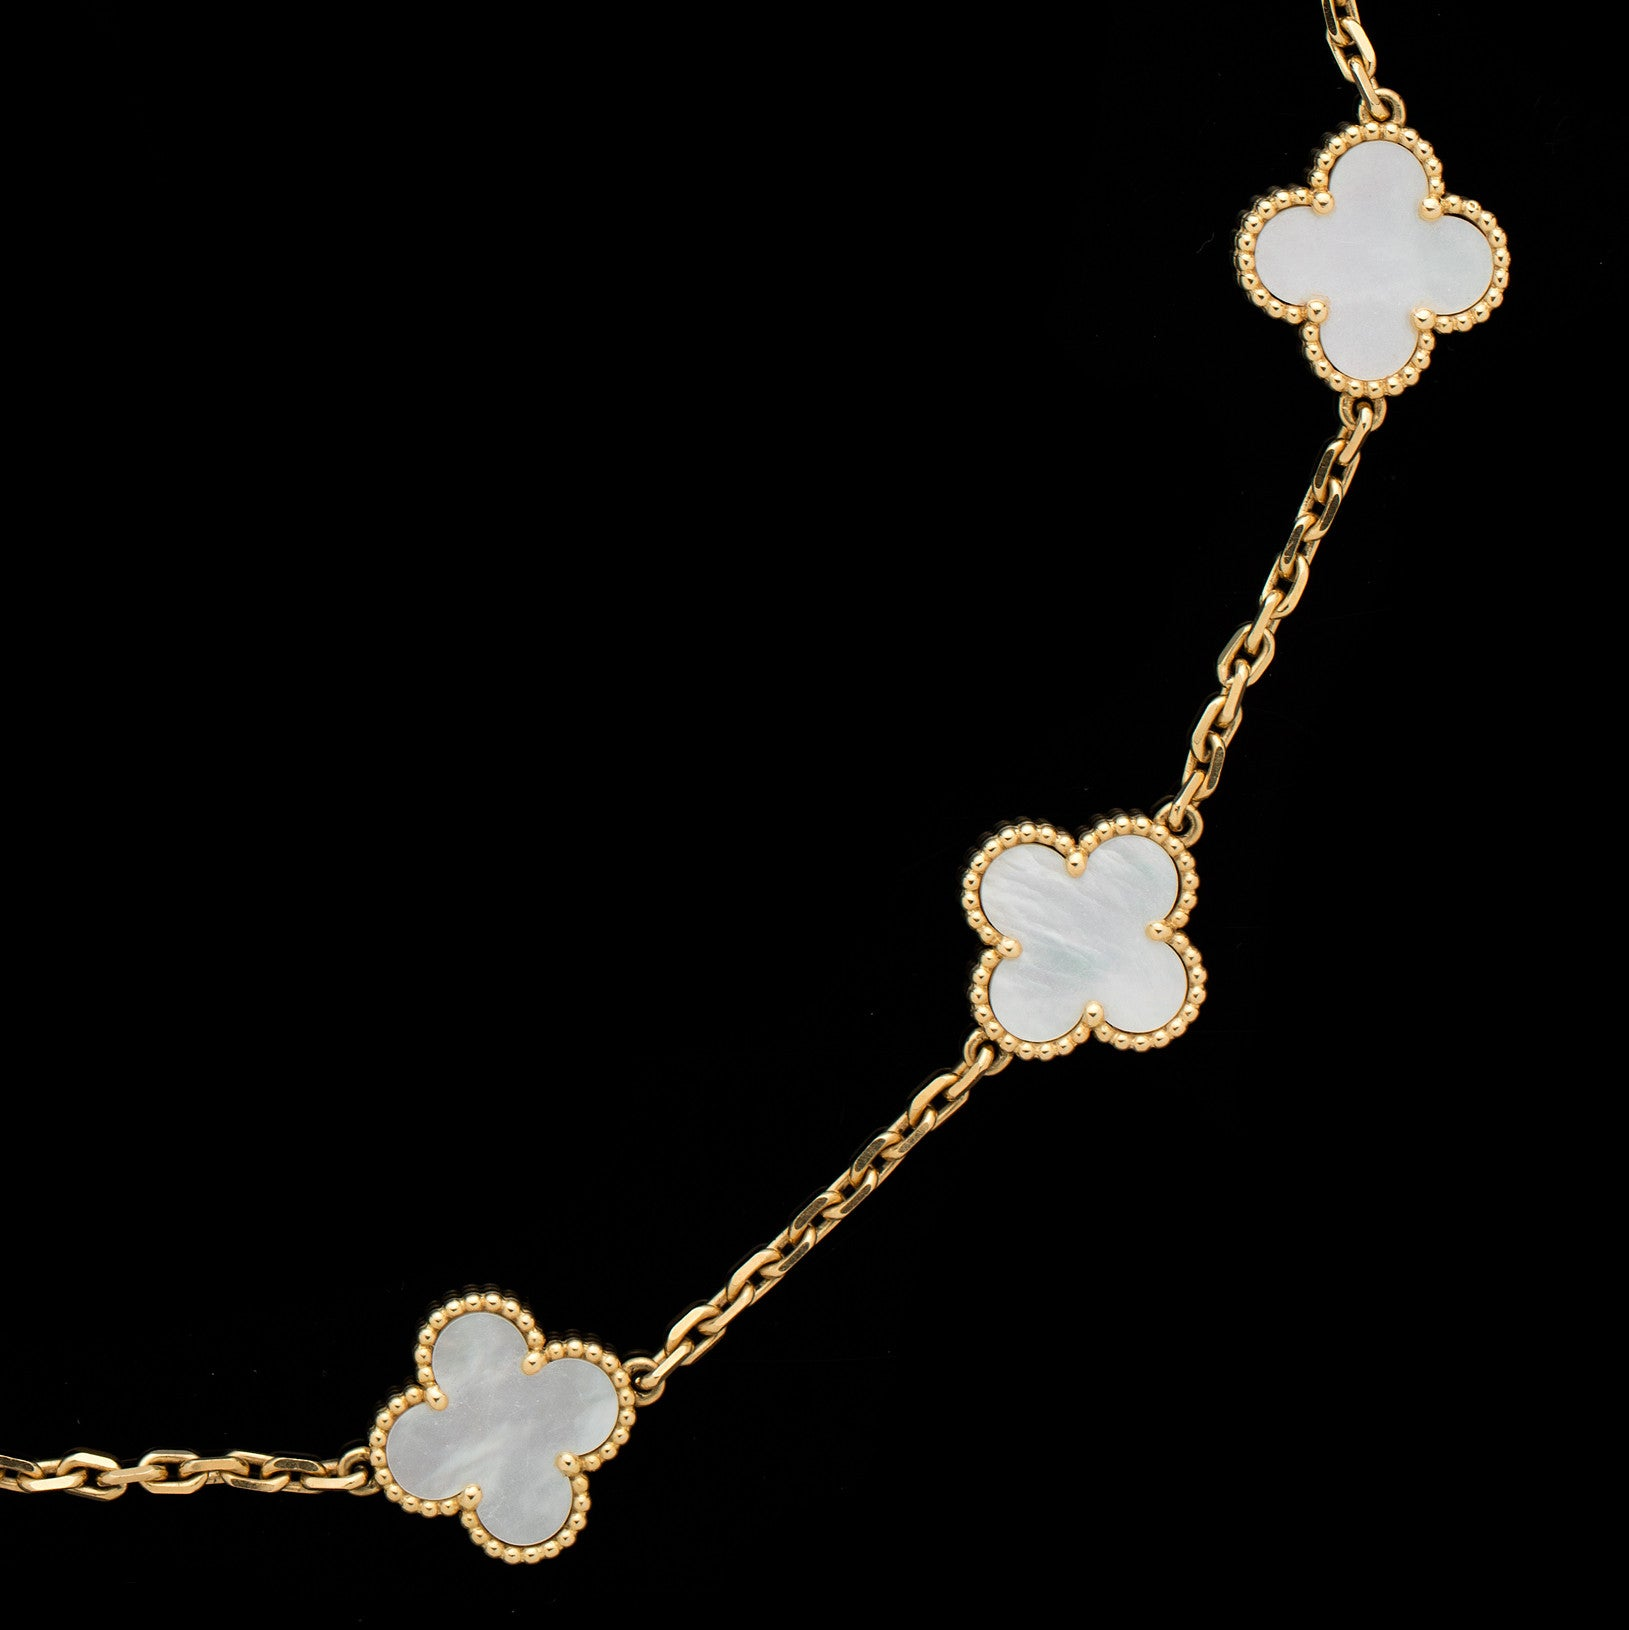 Van Cleef & Arpels Alhambra 10 Mother of Pearl Clover Motifs Necklace